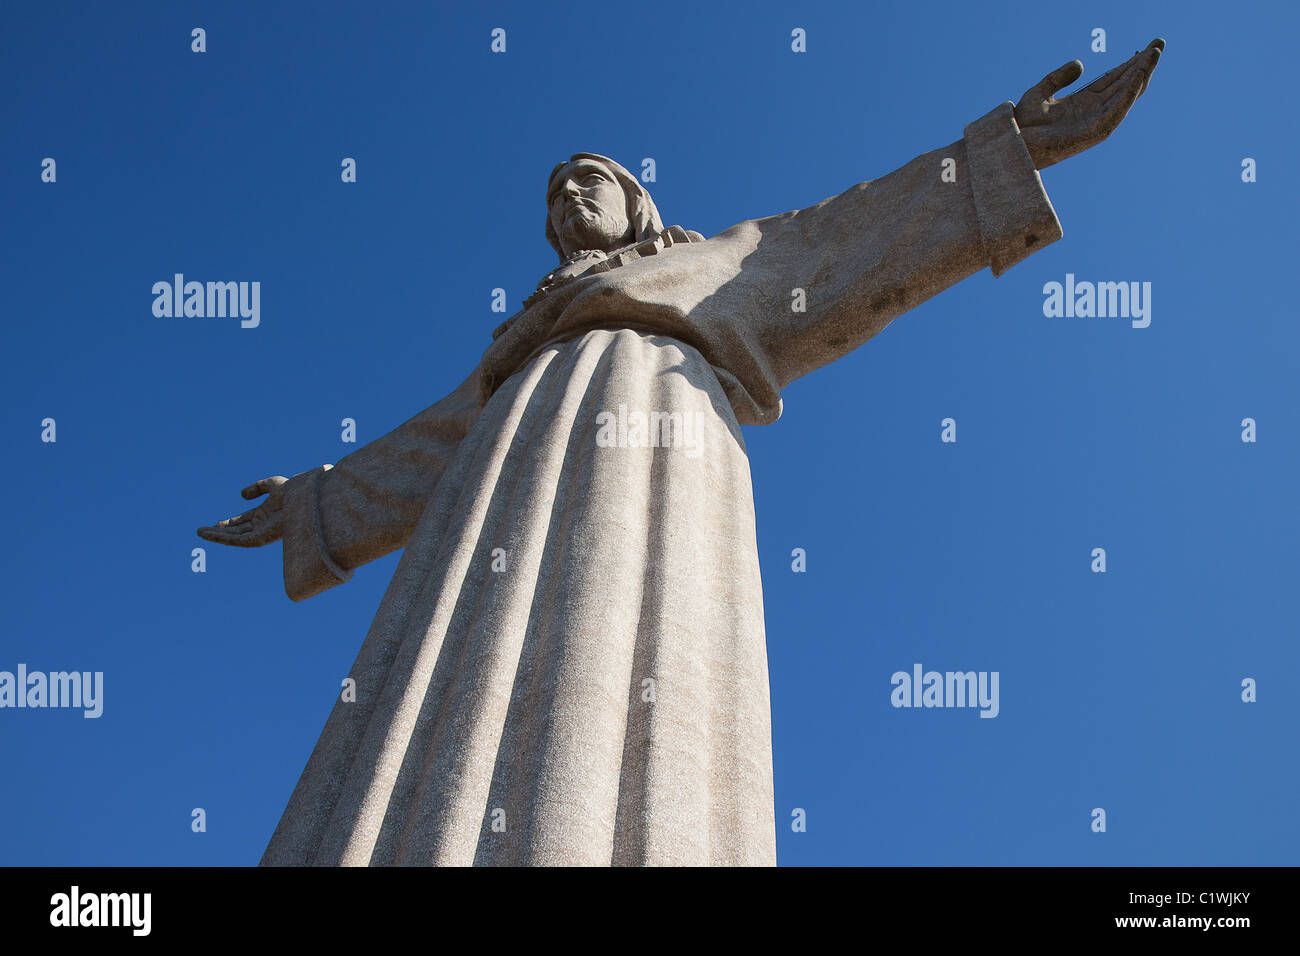 Jesus Christ monument 'Cristo-Rei' in Lisbon, Portugal - Stock Image